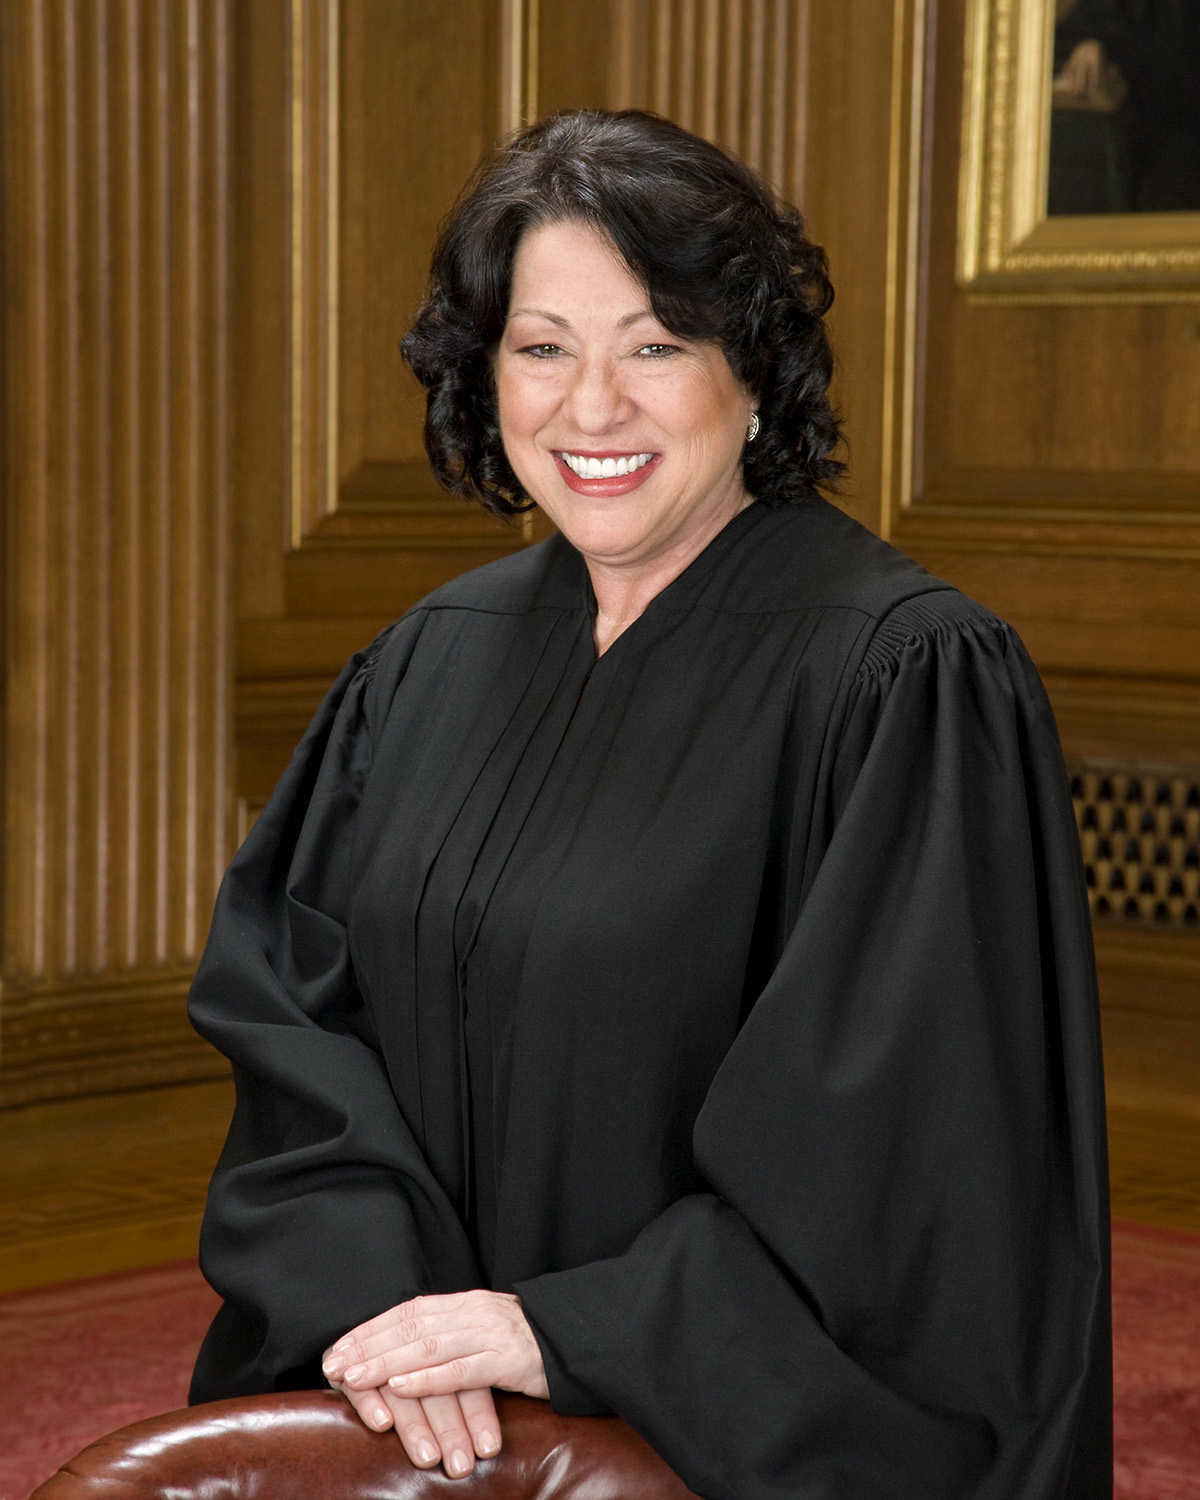 Photograph of Sonia Sotomayor, associate justice of the Supreme Court of the United States.